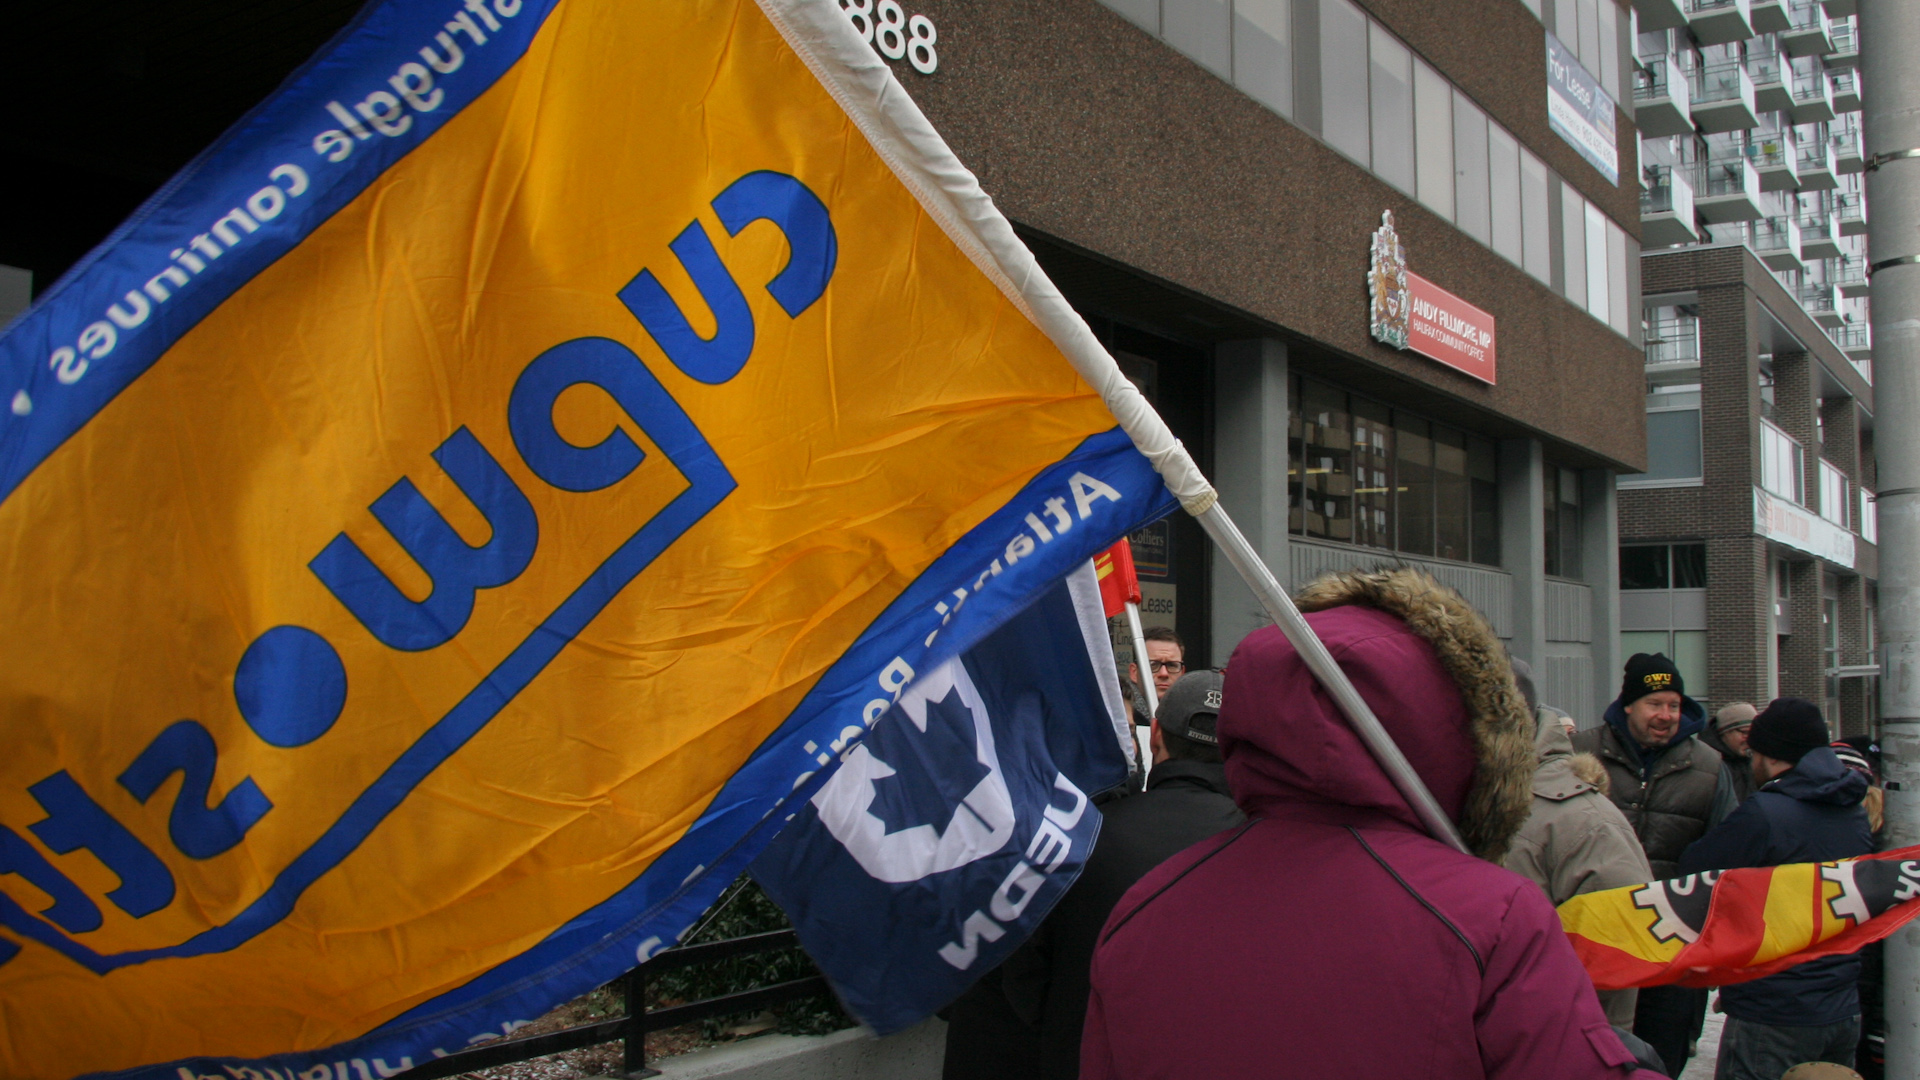 Supporters gathered in front of MP Andy Fillmore's office to stand with striking postal workers.